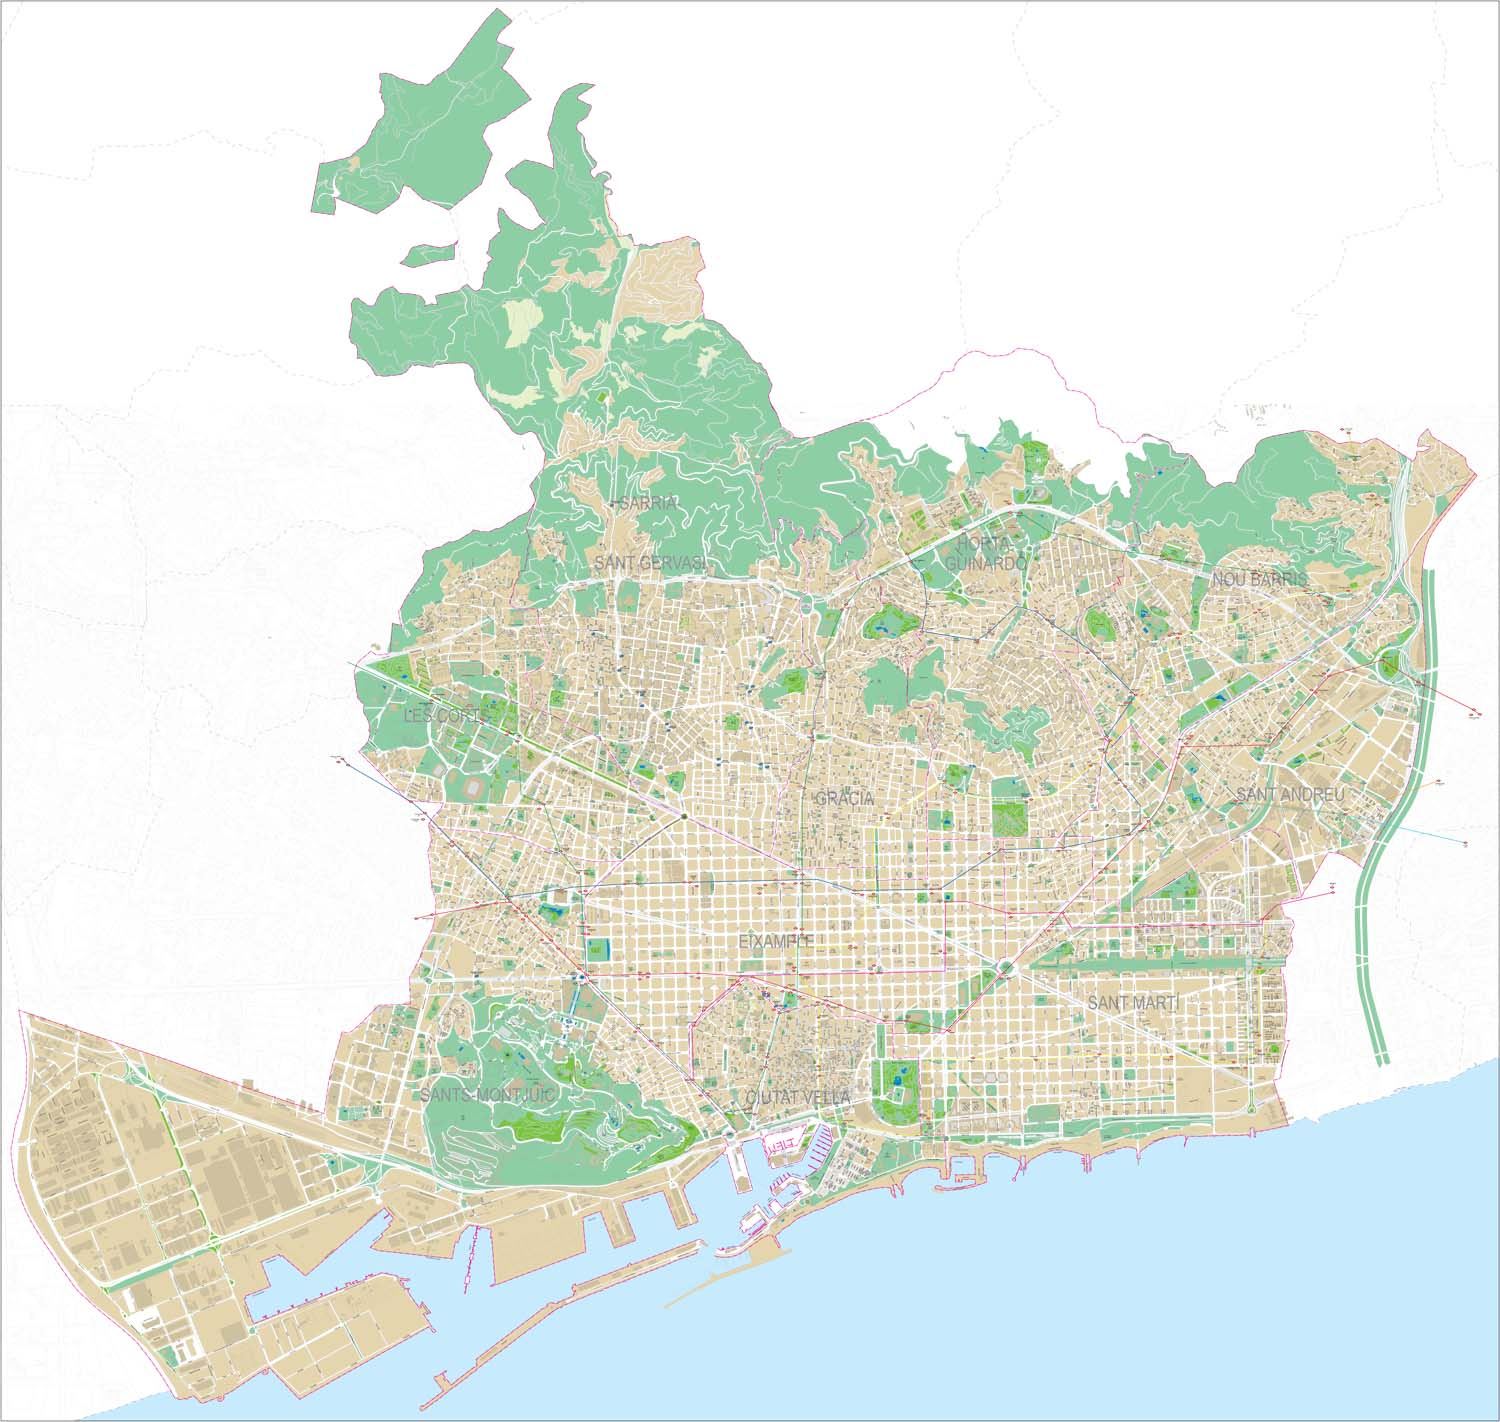 Barcelona entire city map